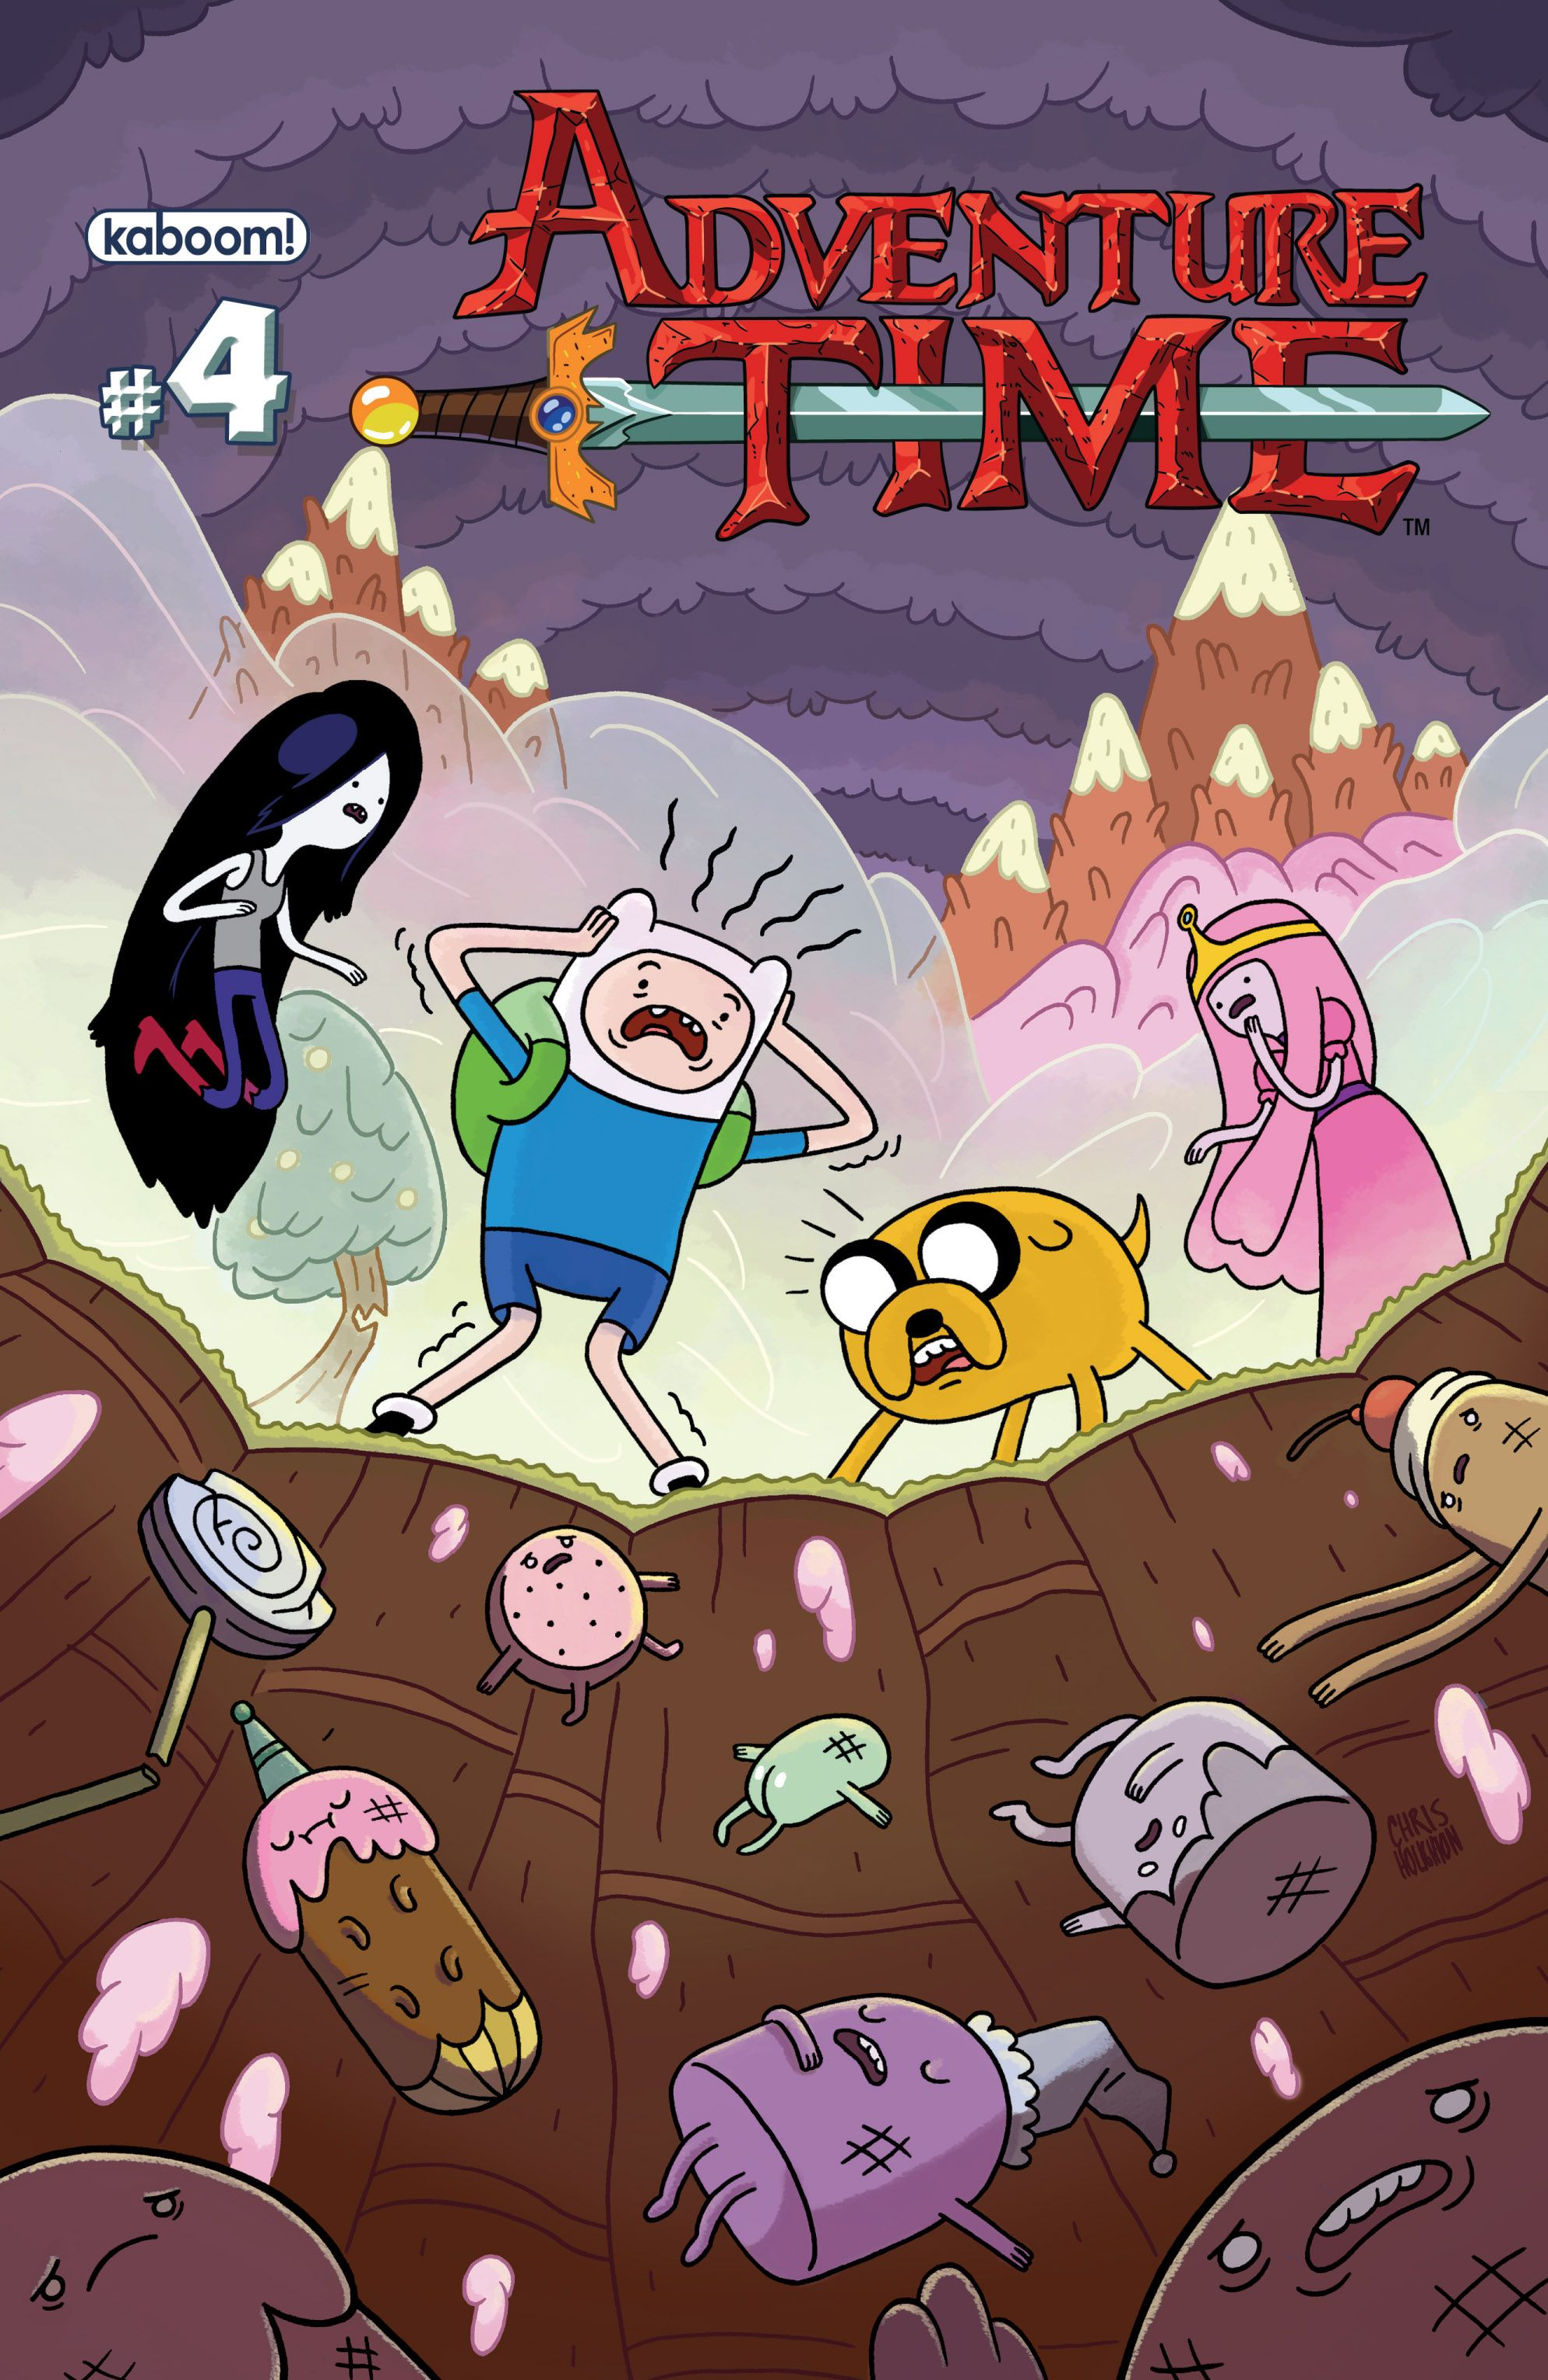 Read online Adventure Time comic -  Issue #4 - 1